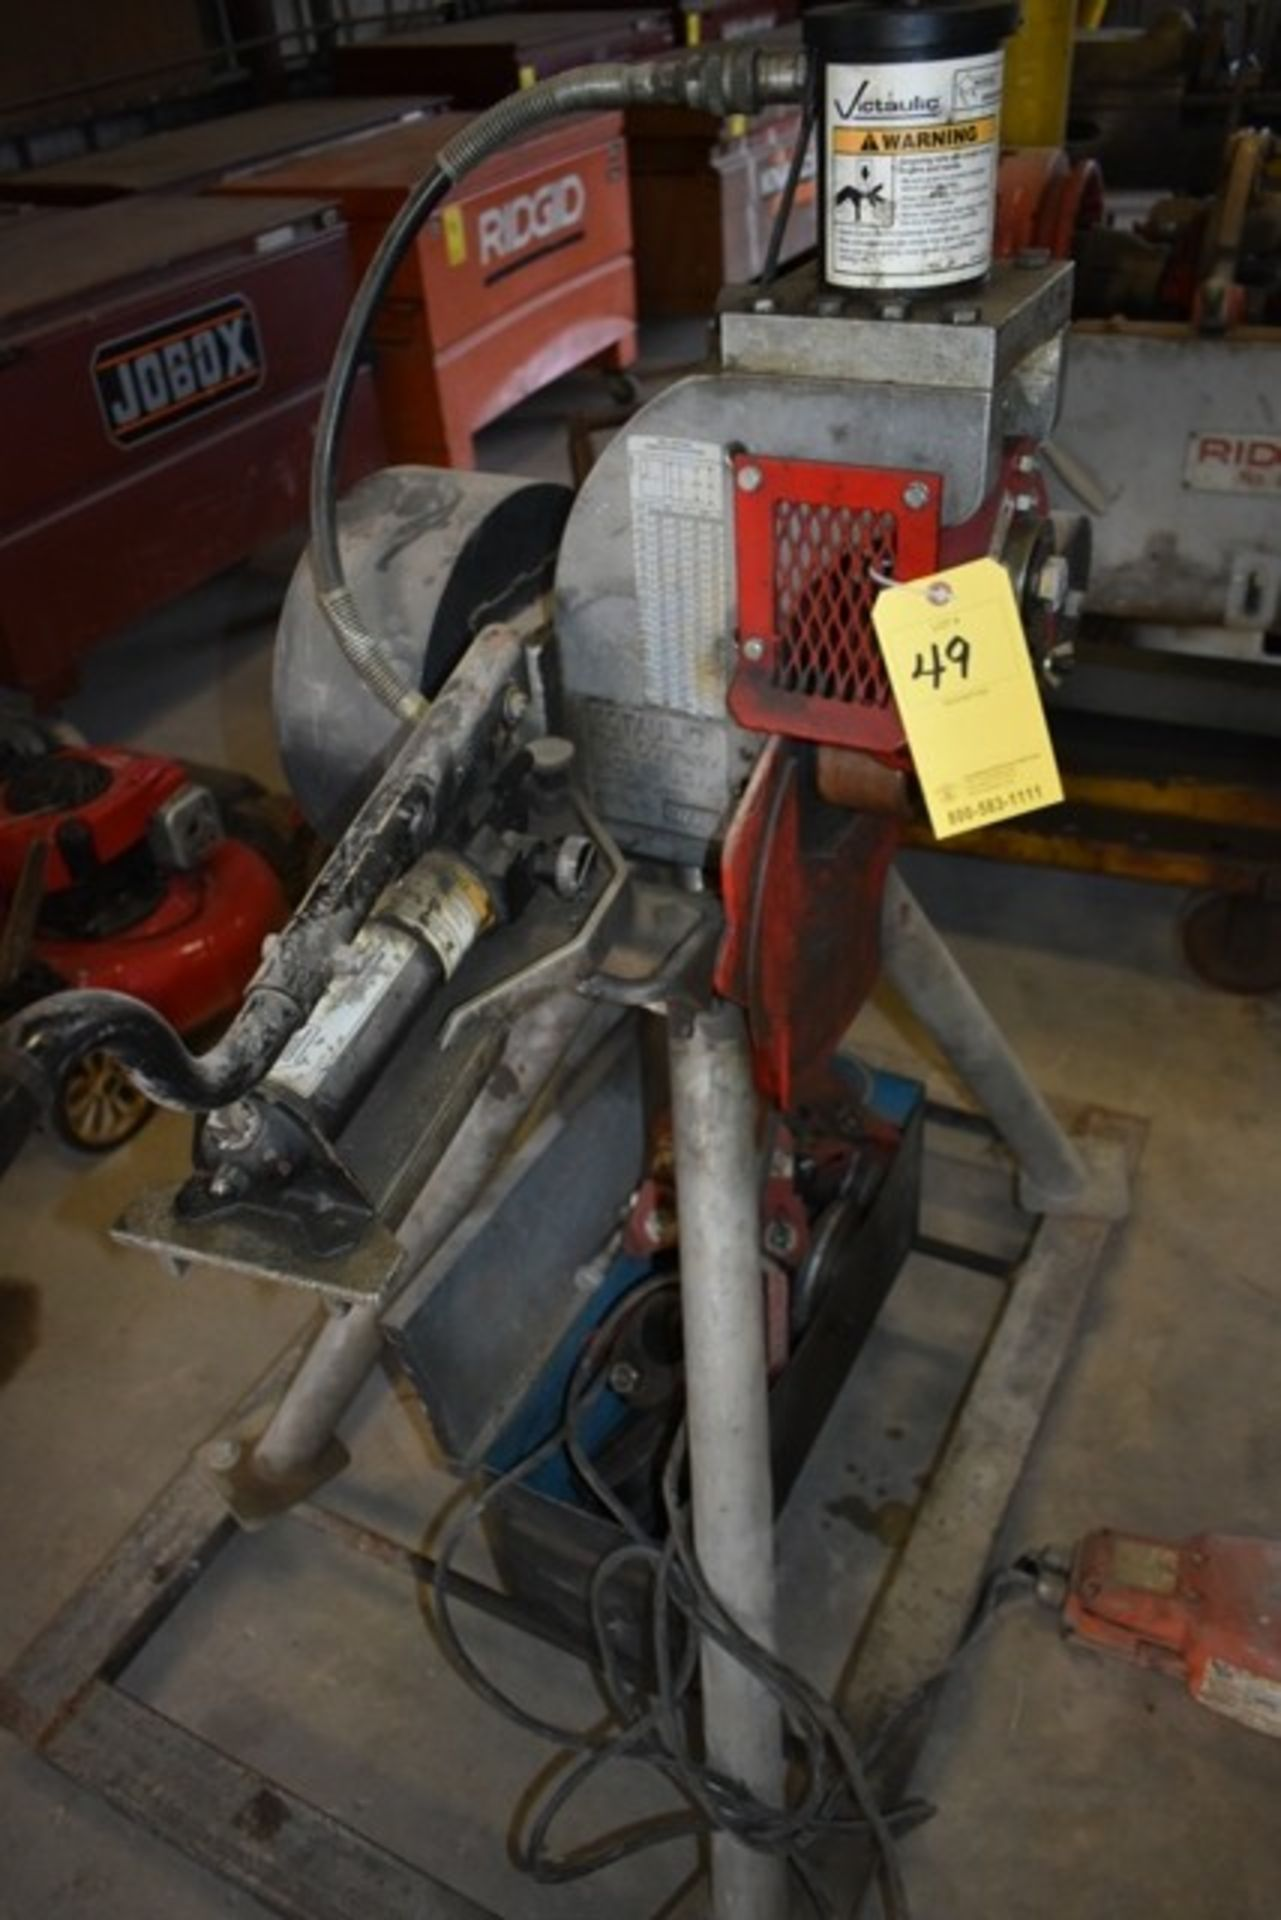 VICTAULIC VE-416FSO ROLE GROOVING MACHINE W/ ASSORT TOOLING - Image 3 of 4